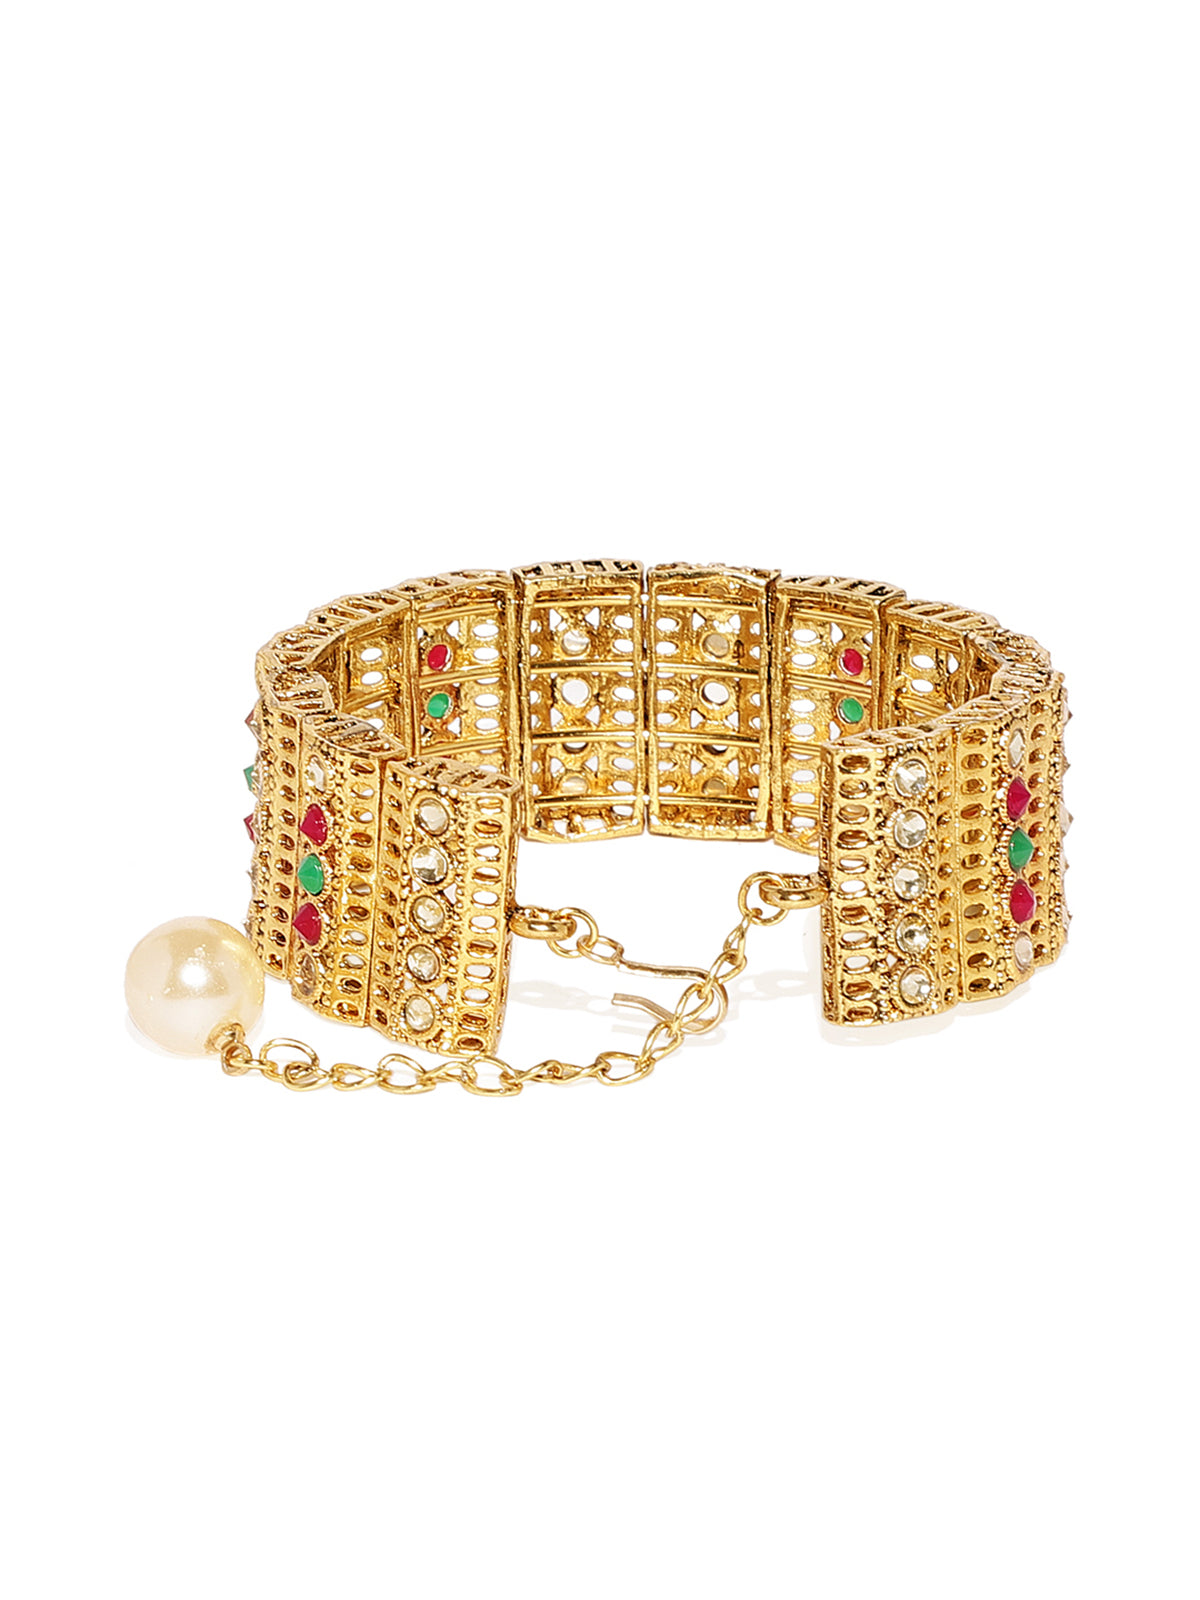 Zaveri Pearls Gold Tone Ethnic Cuff Style Adjustable Bracelet